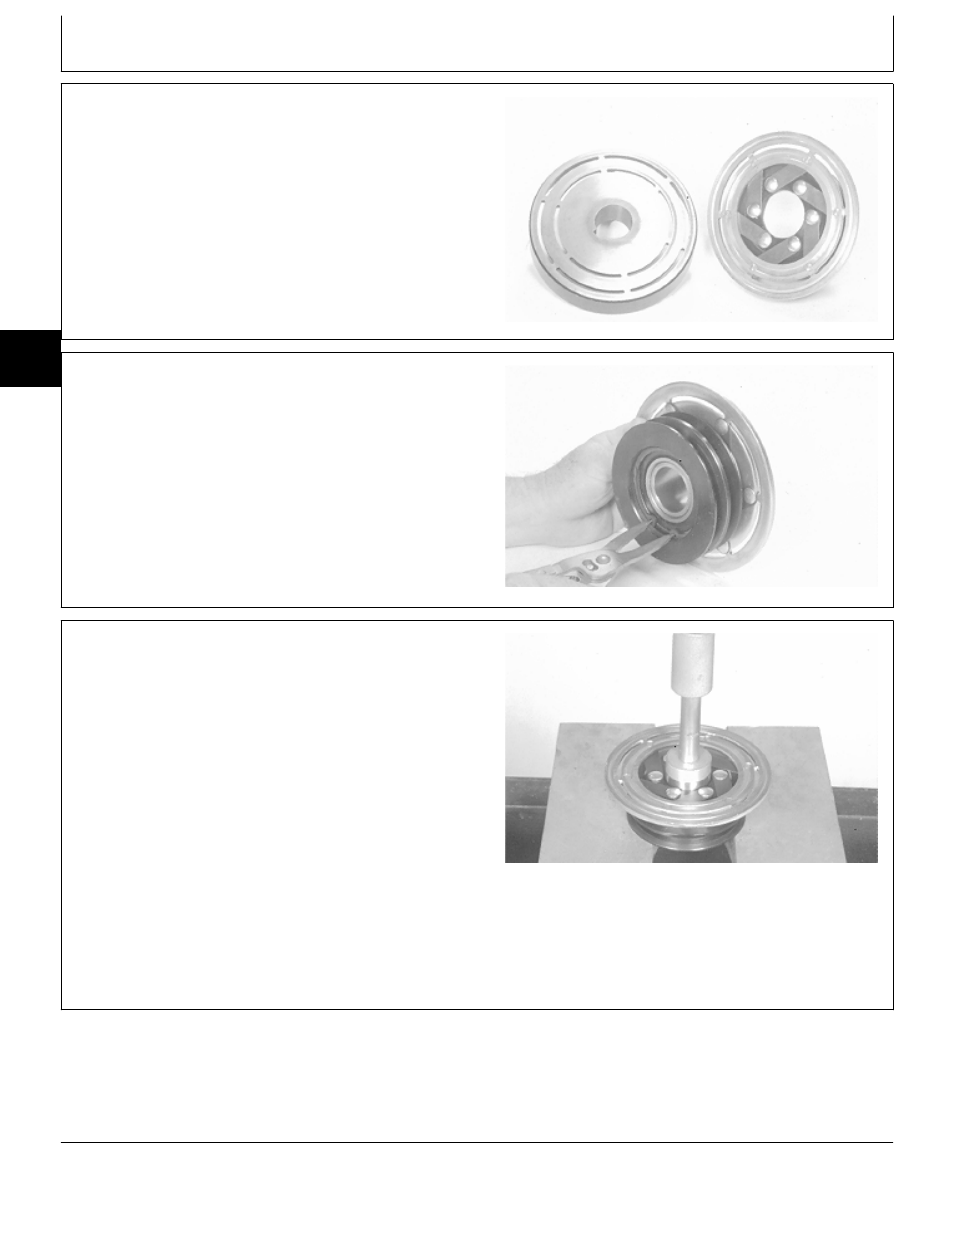 Disassemble Inspect And Assemble Front Pto Clutch John Deere 318 180 Wiring Diagram In Addition 445 Lawn Tractor User Manual Page 54 440